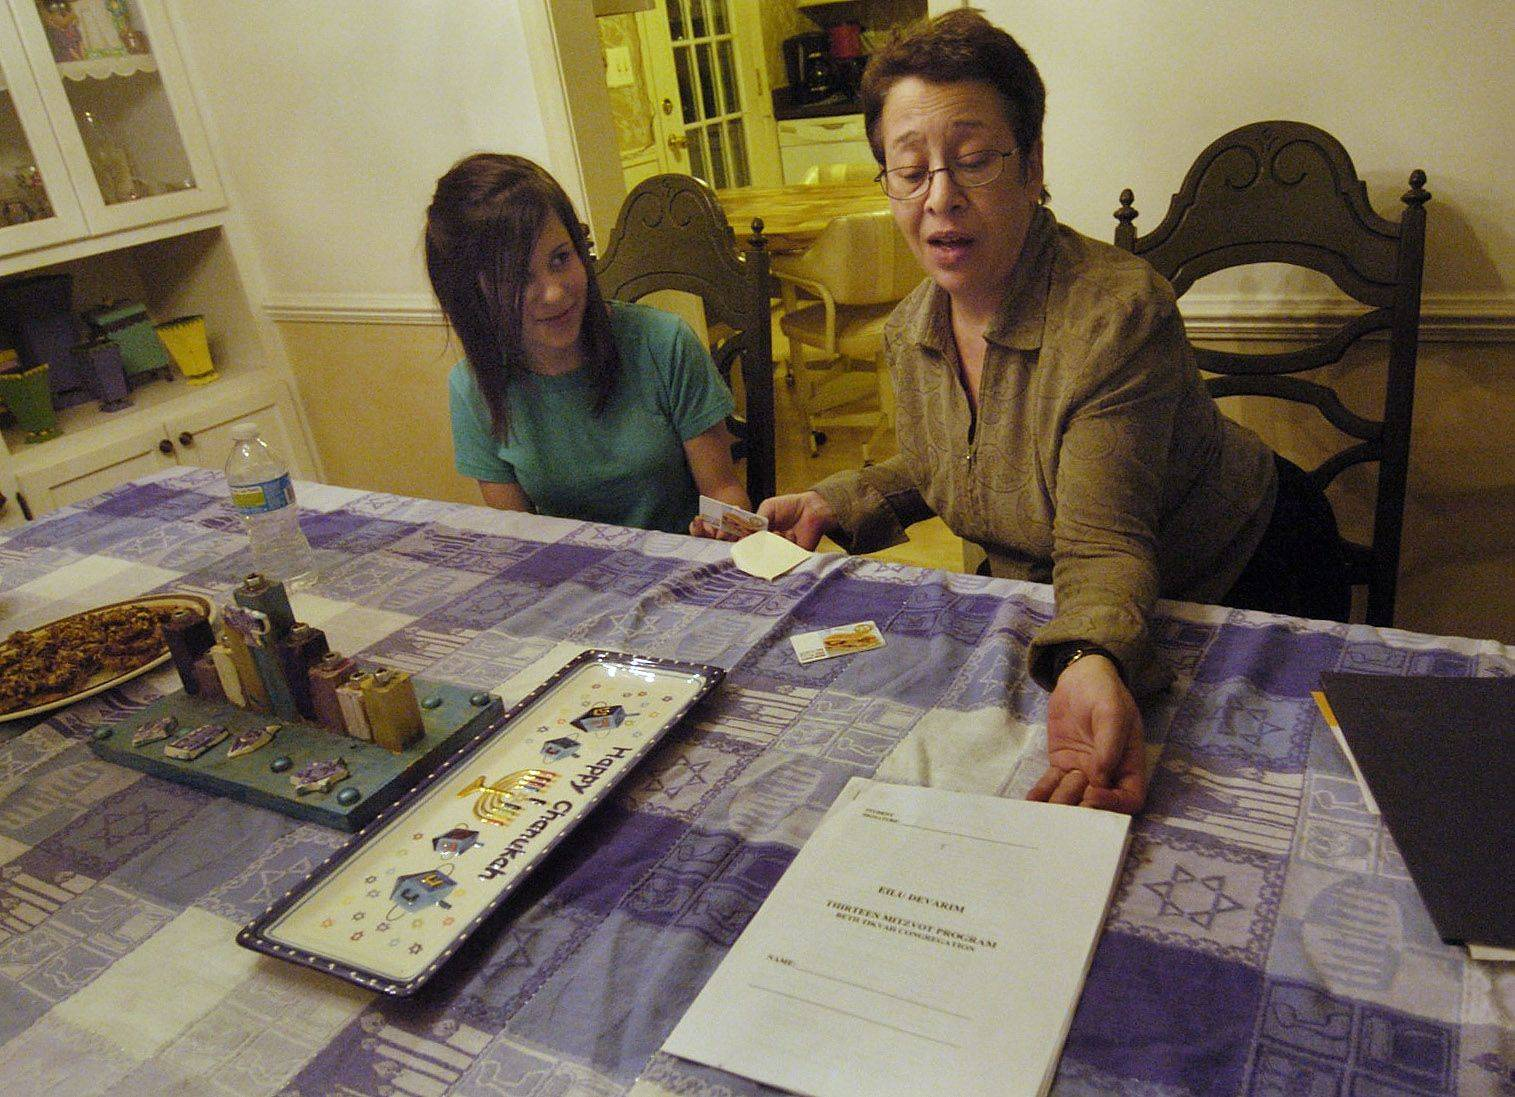 Mariah Reeves with her mom, Sandy, of Hanover Park, looks over the list of 13 service projects she needs to complete before her bat mitzvah. Mariah Reeves has decided to help the Saavedra family to satisfy one of the 13 good deeds. The Saavedras live in Carpentersville and have fallen on hard times.